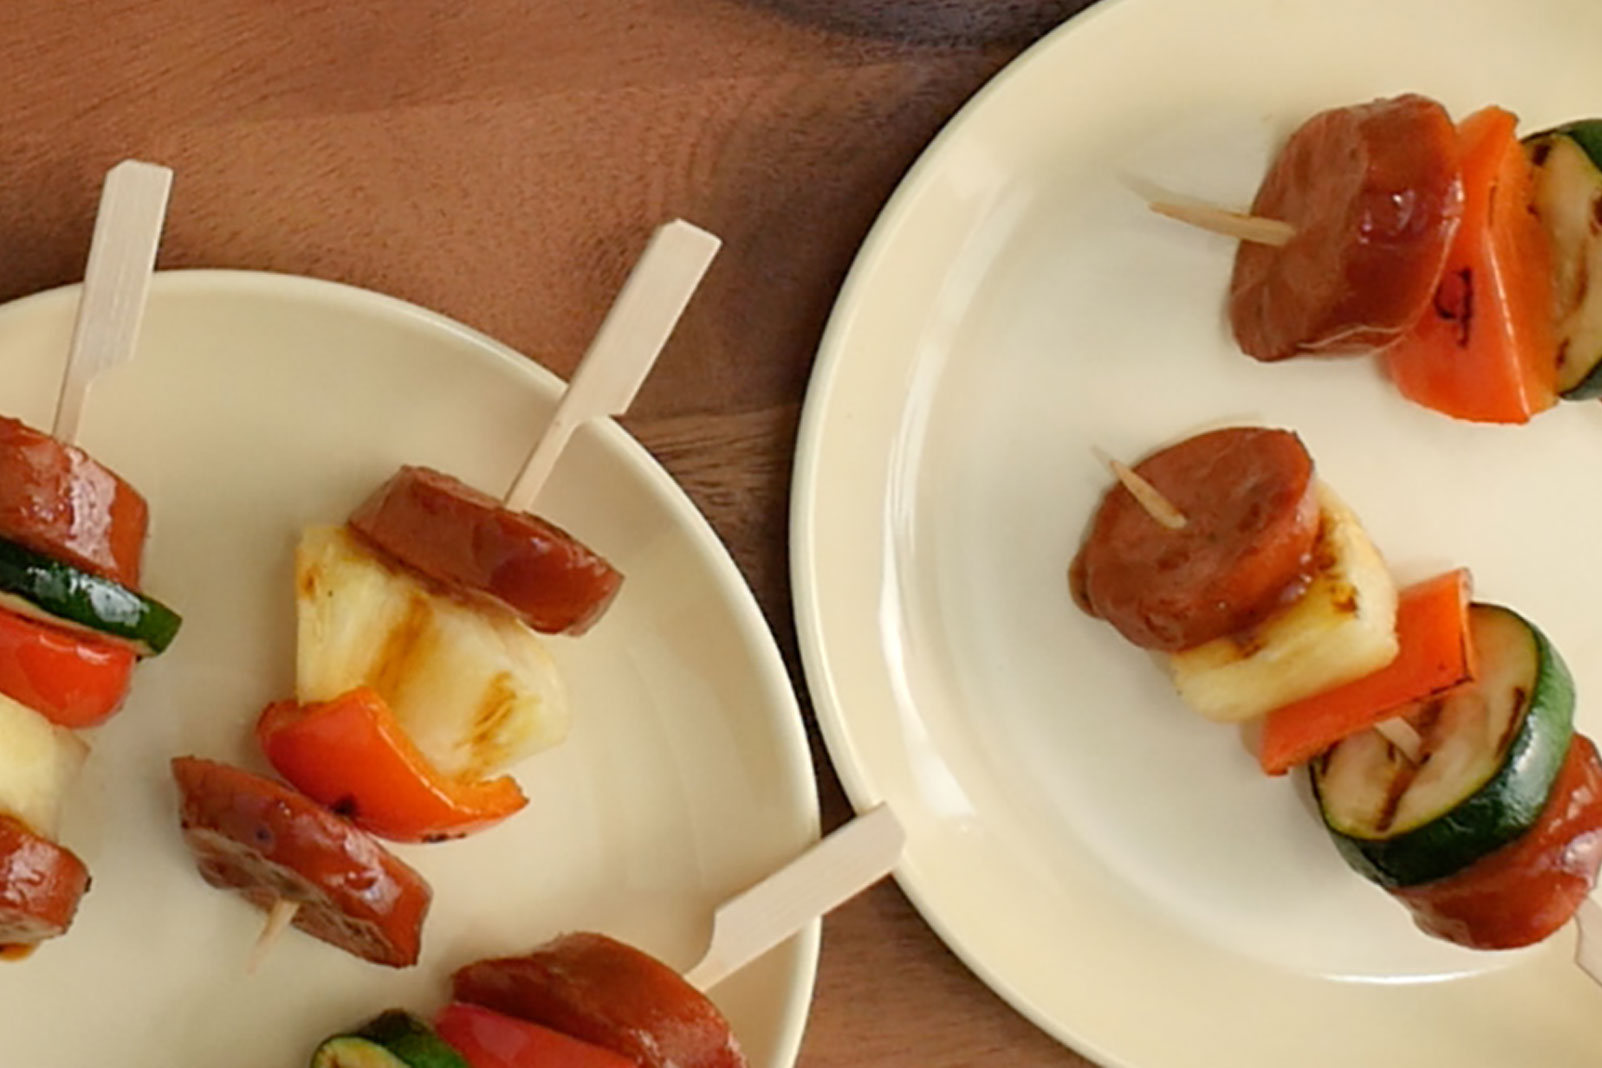 Cranberry Pineapple Glazed Kielbasa Bites